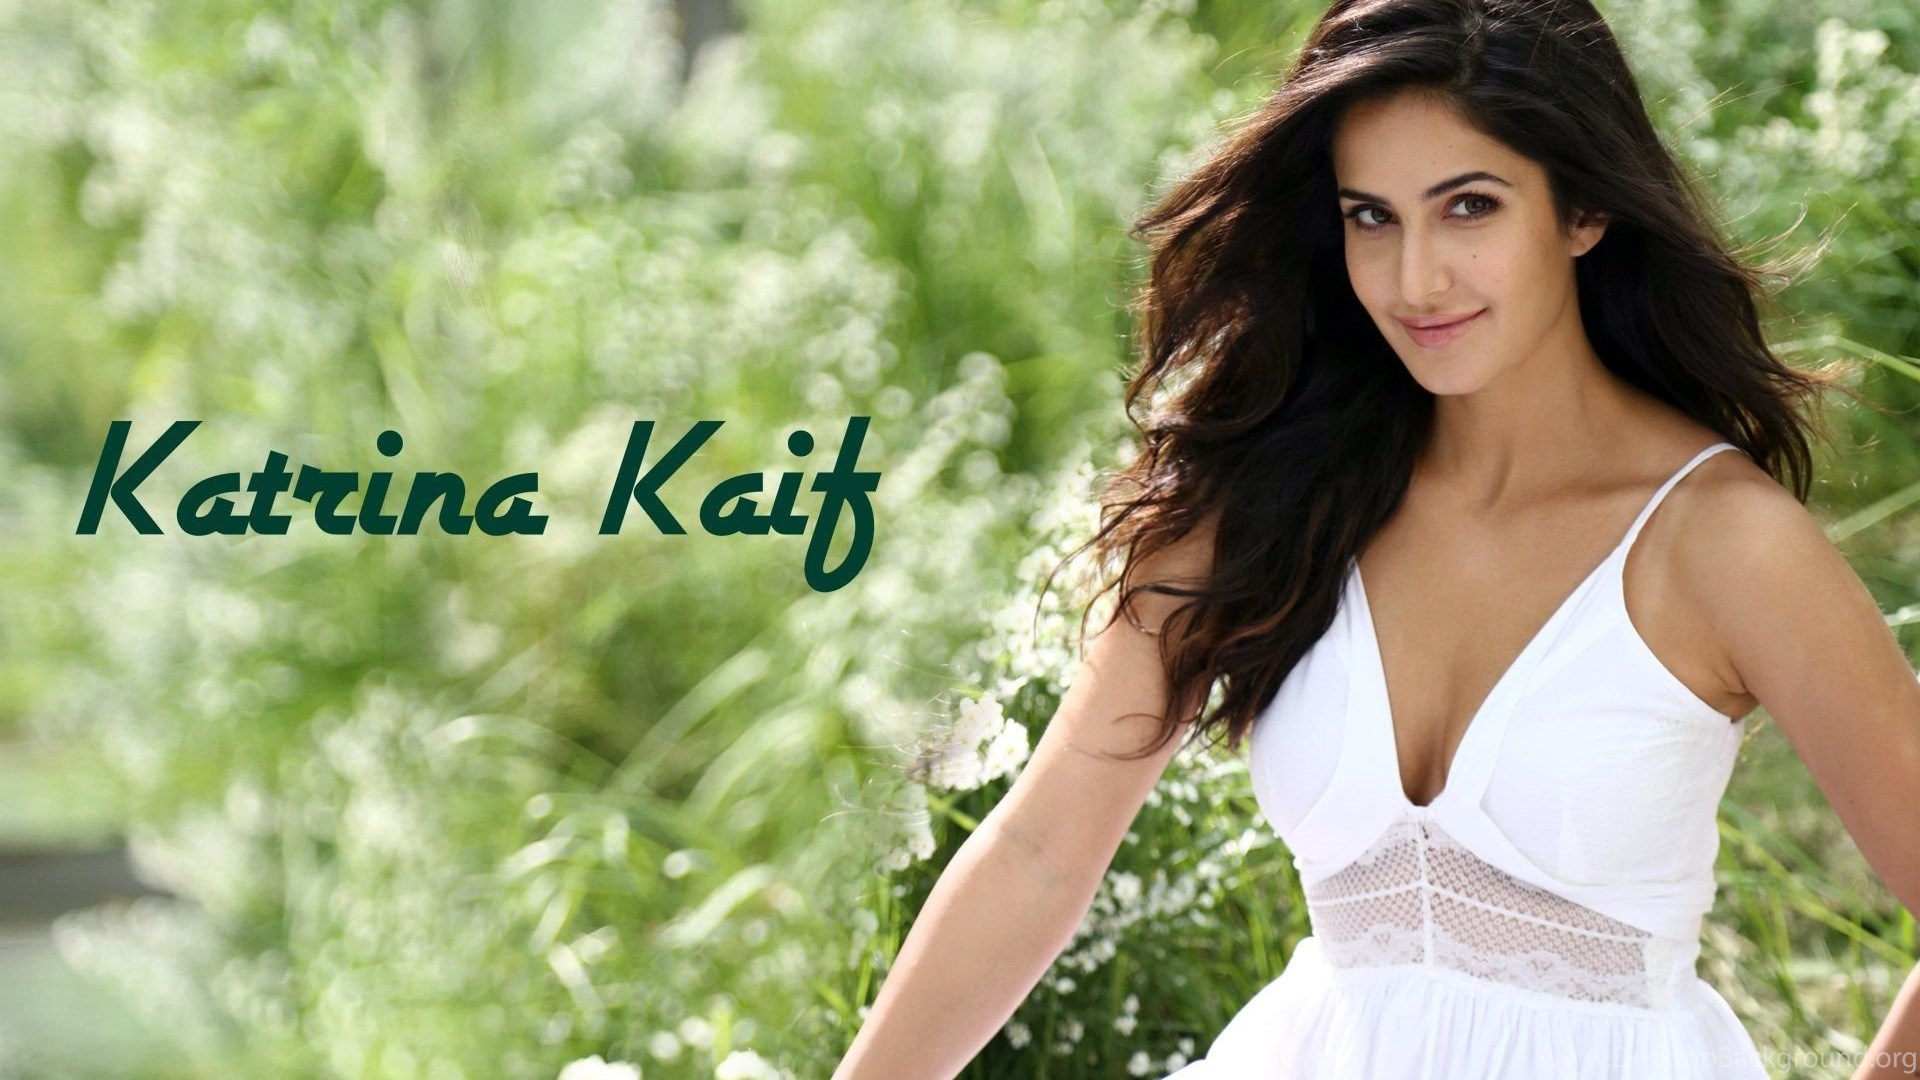 Katrina Kaif Pretty Bollywood Indian Girl Hd Wallpapers Wallpapers